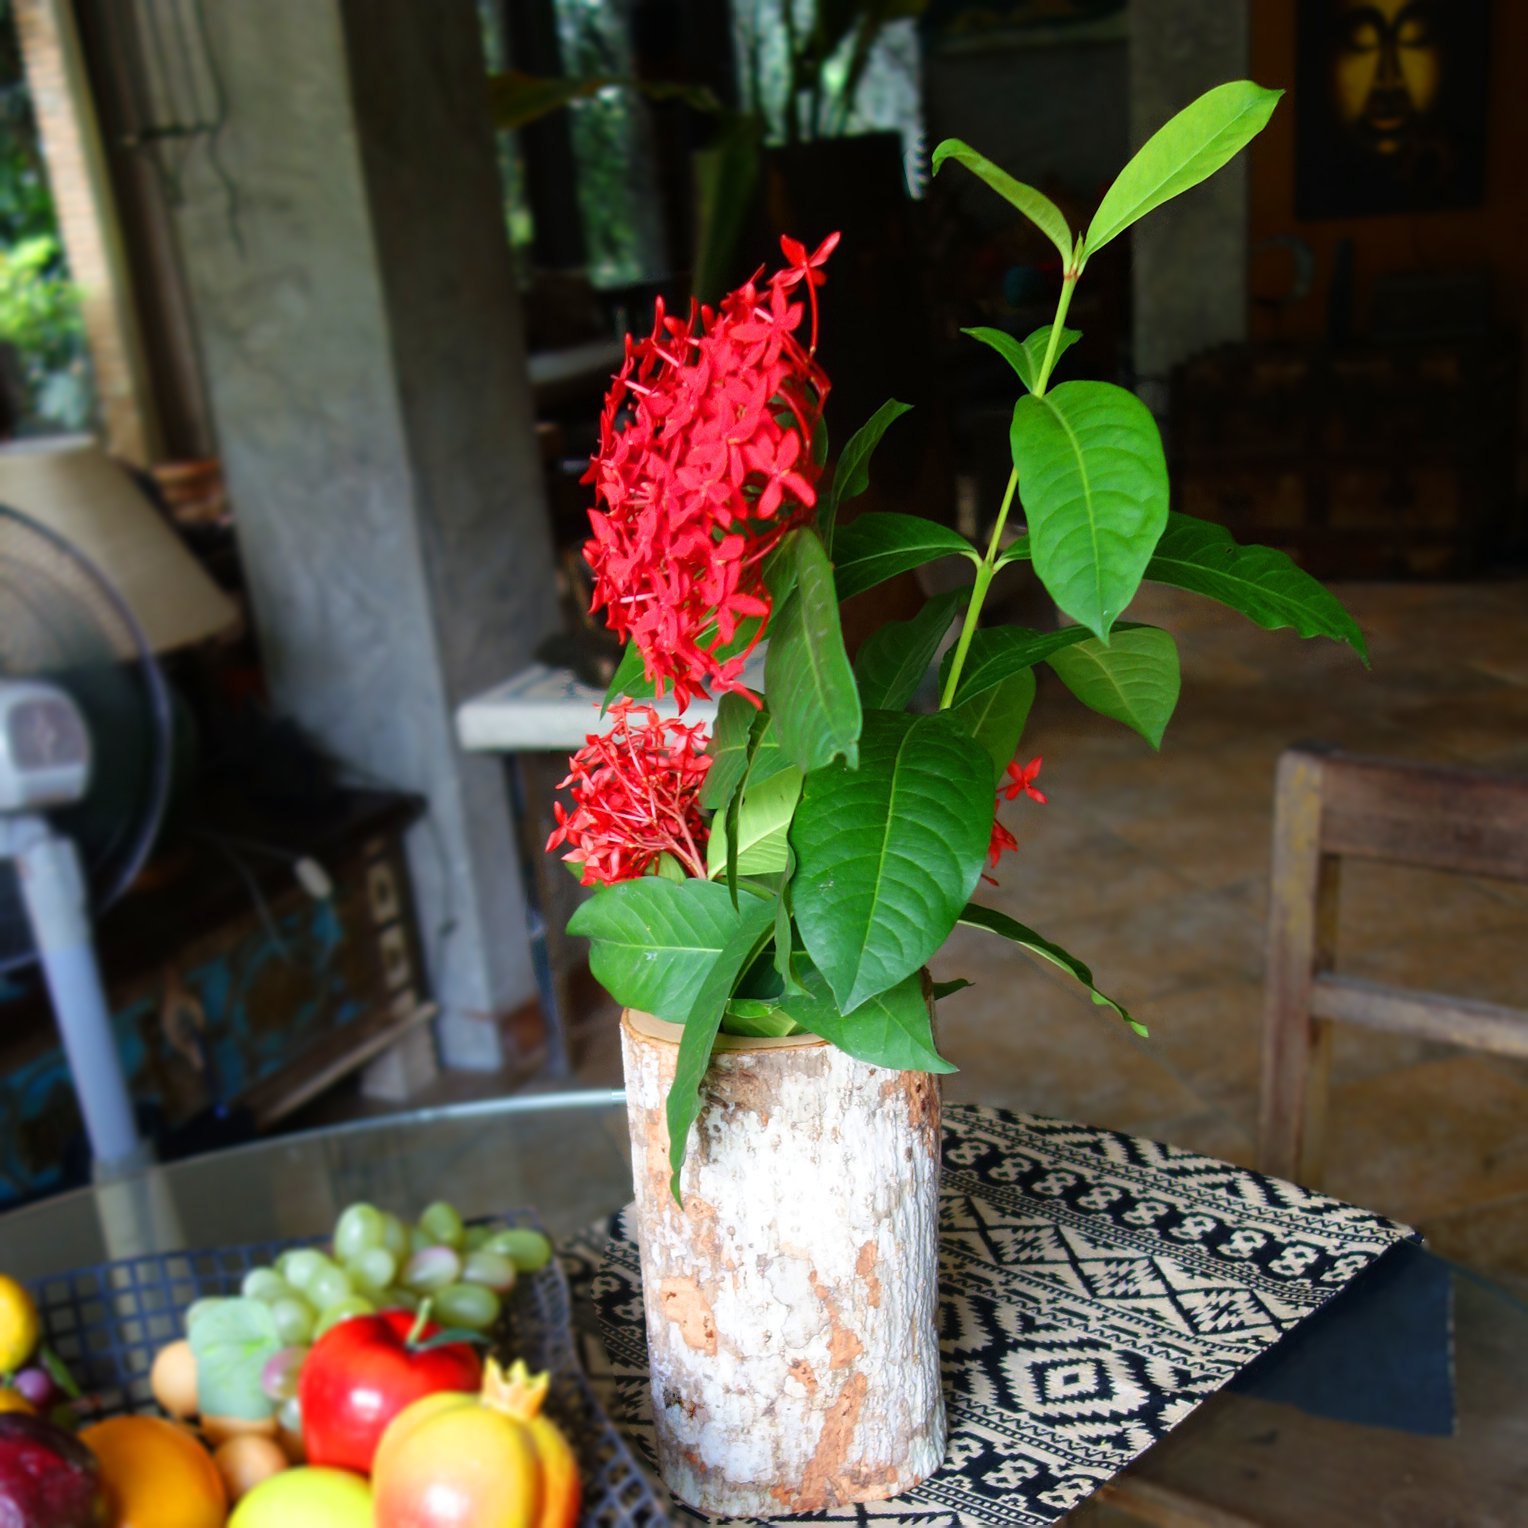 roro 9 Inch Natural Wood Branch Vase with Bark by roro (Image #2)